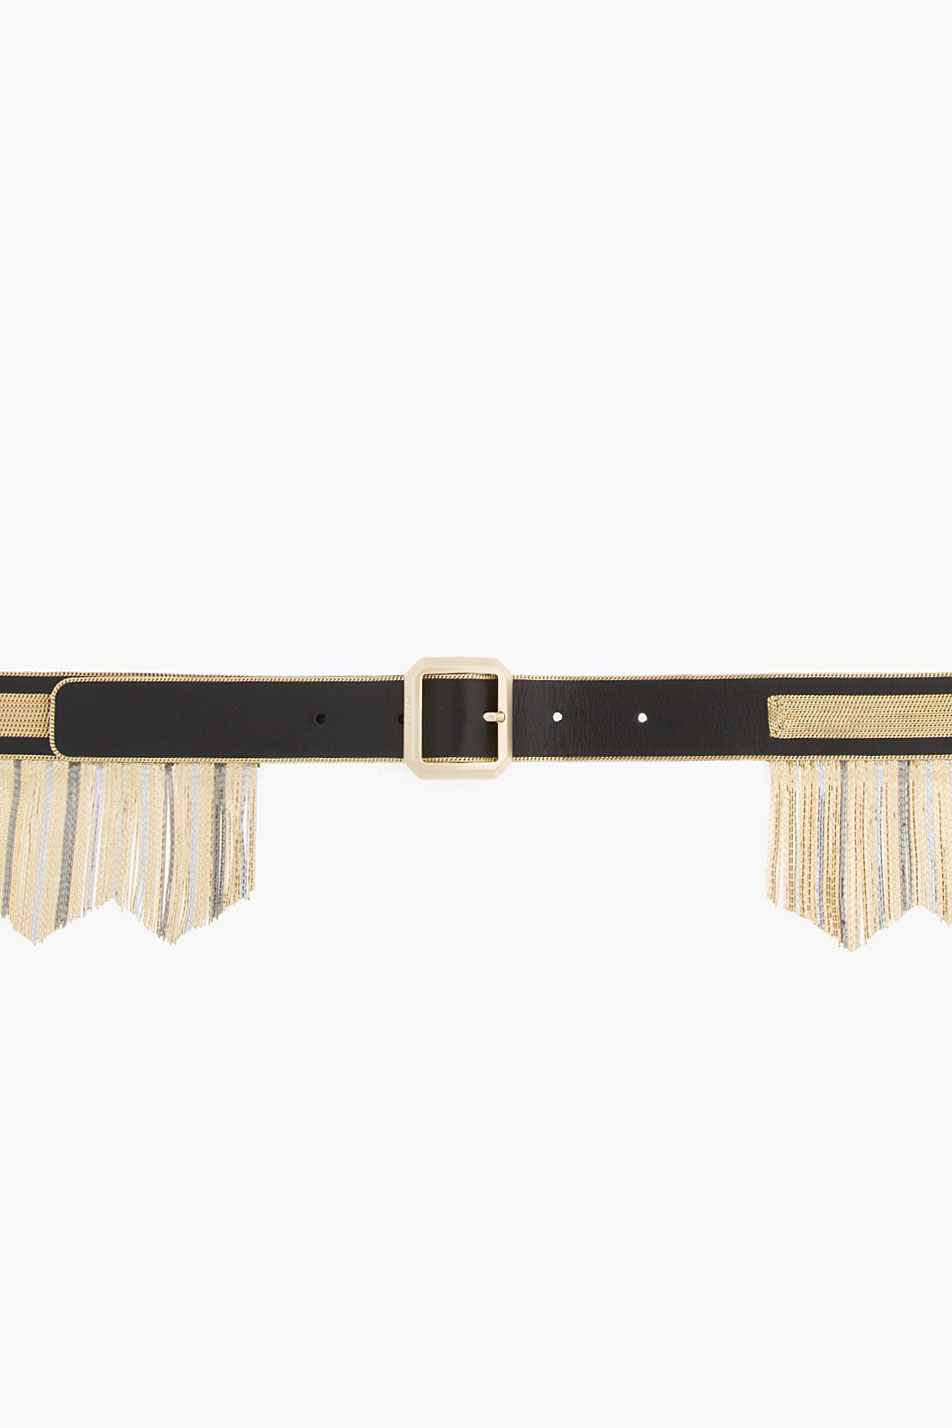 Versace micro-fringed chain leather belt